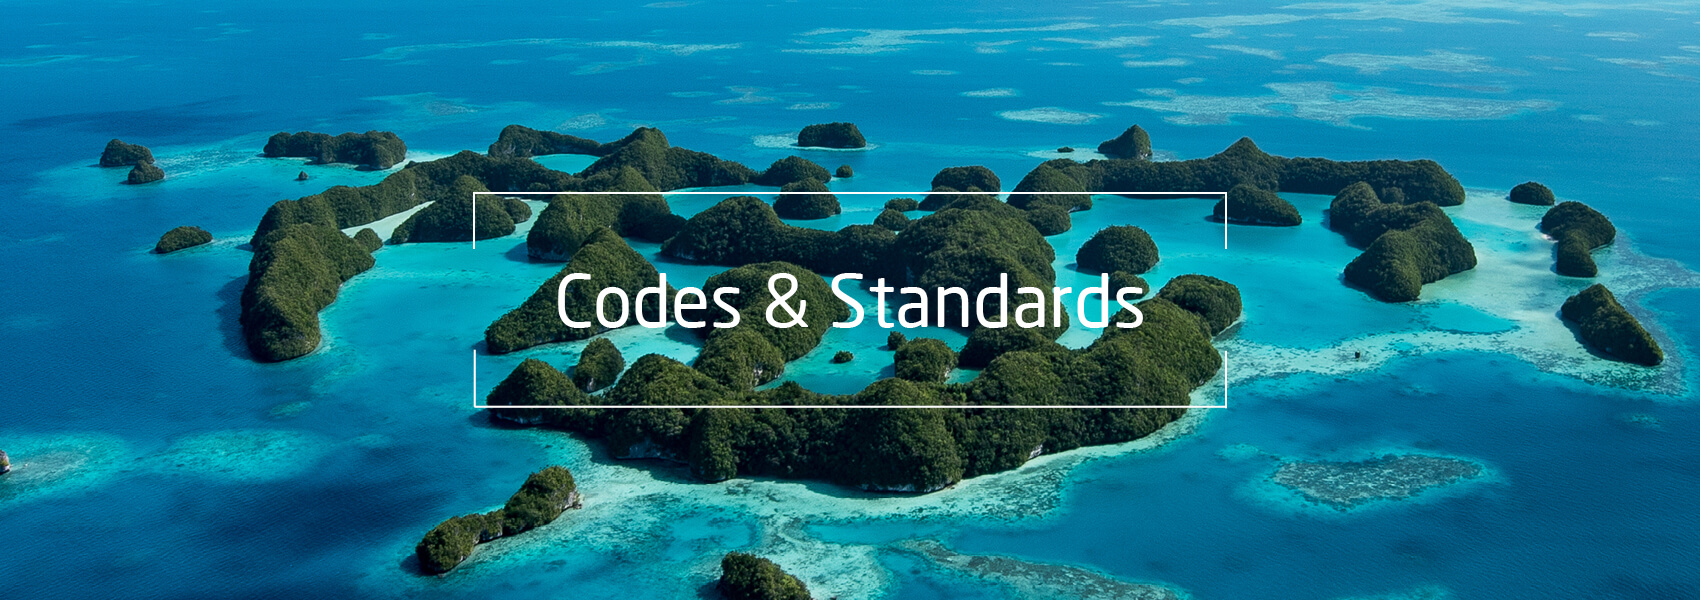 Inseln im Meer, Text: Codes & Standards